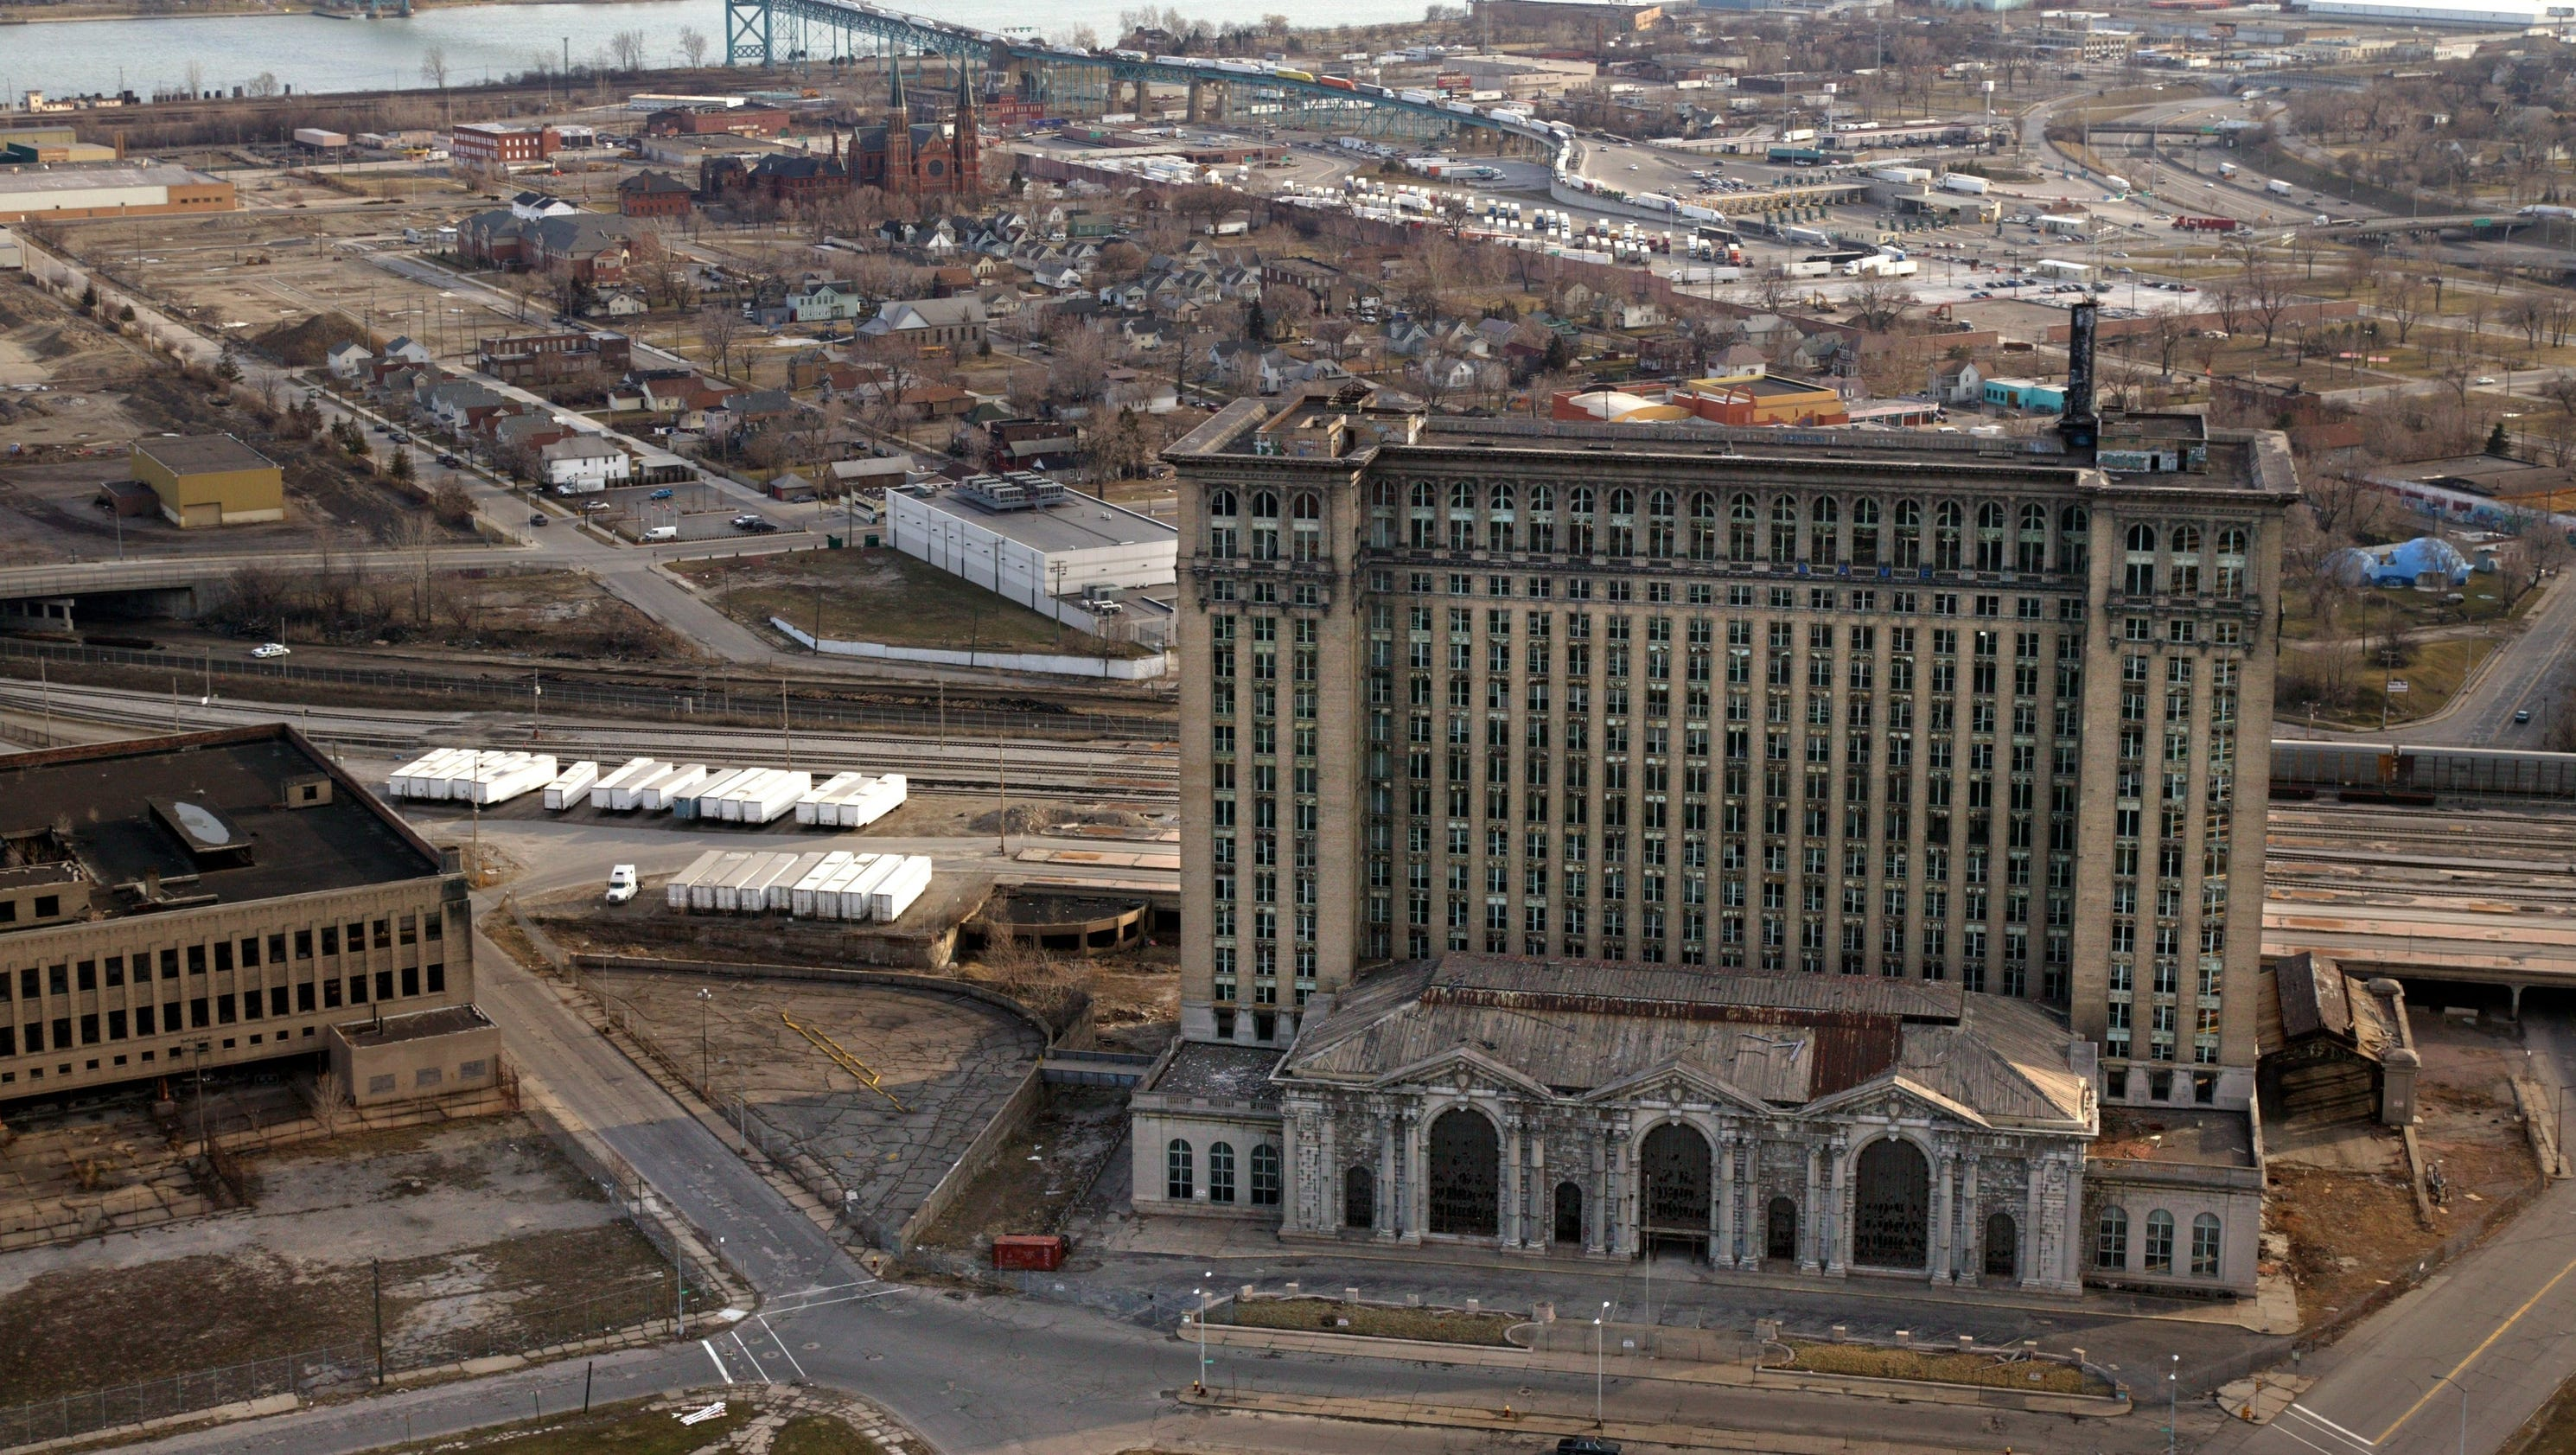 last train left detroit depot 27 years ago today